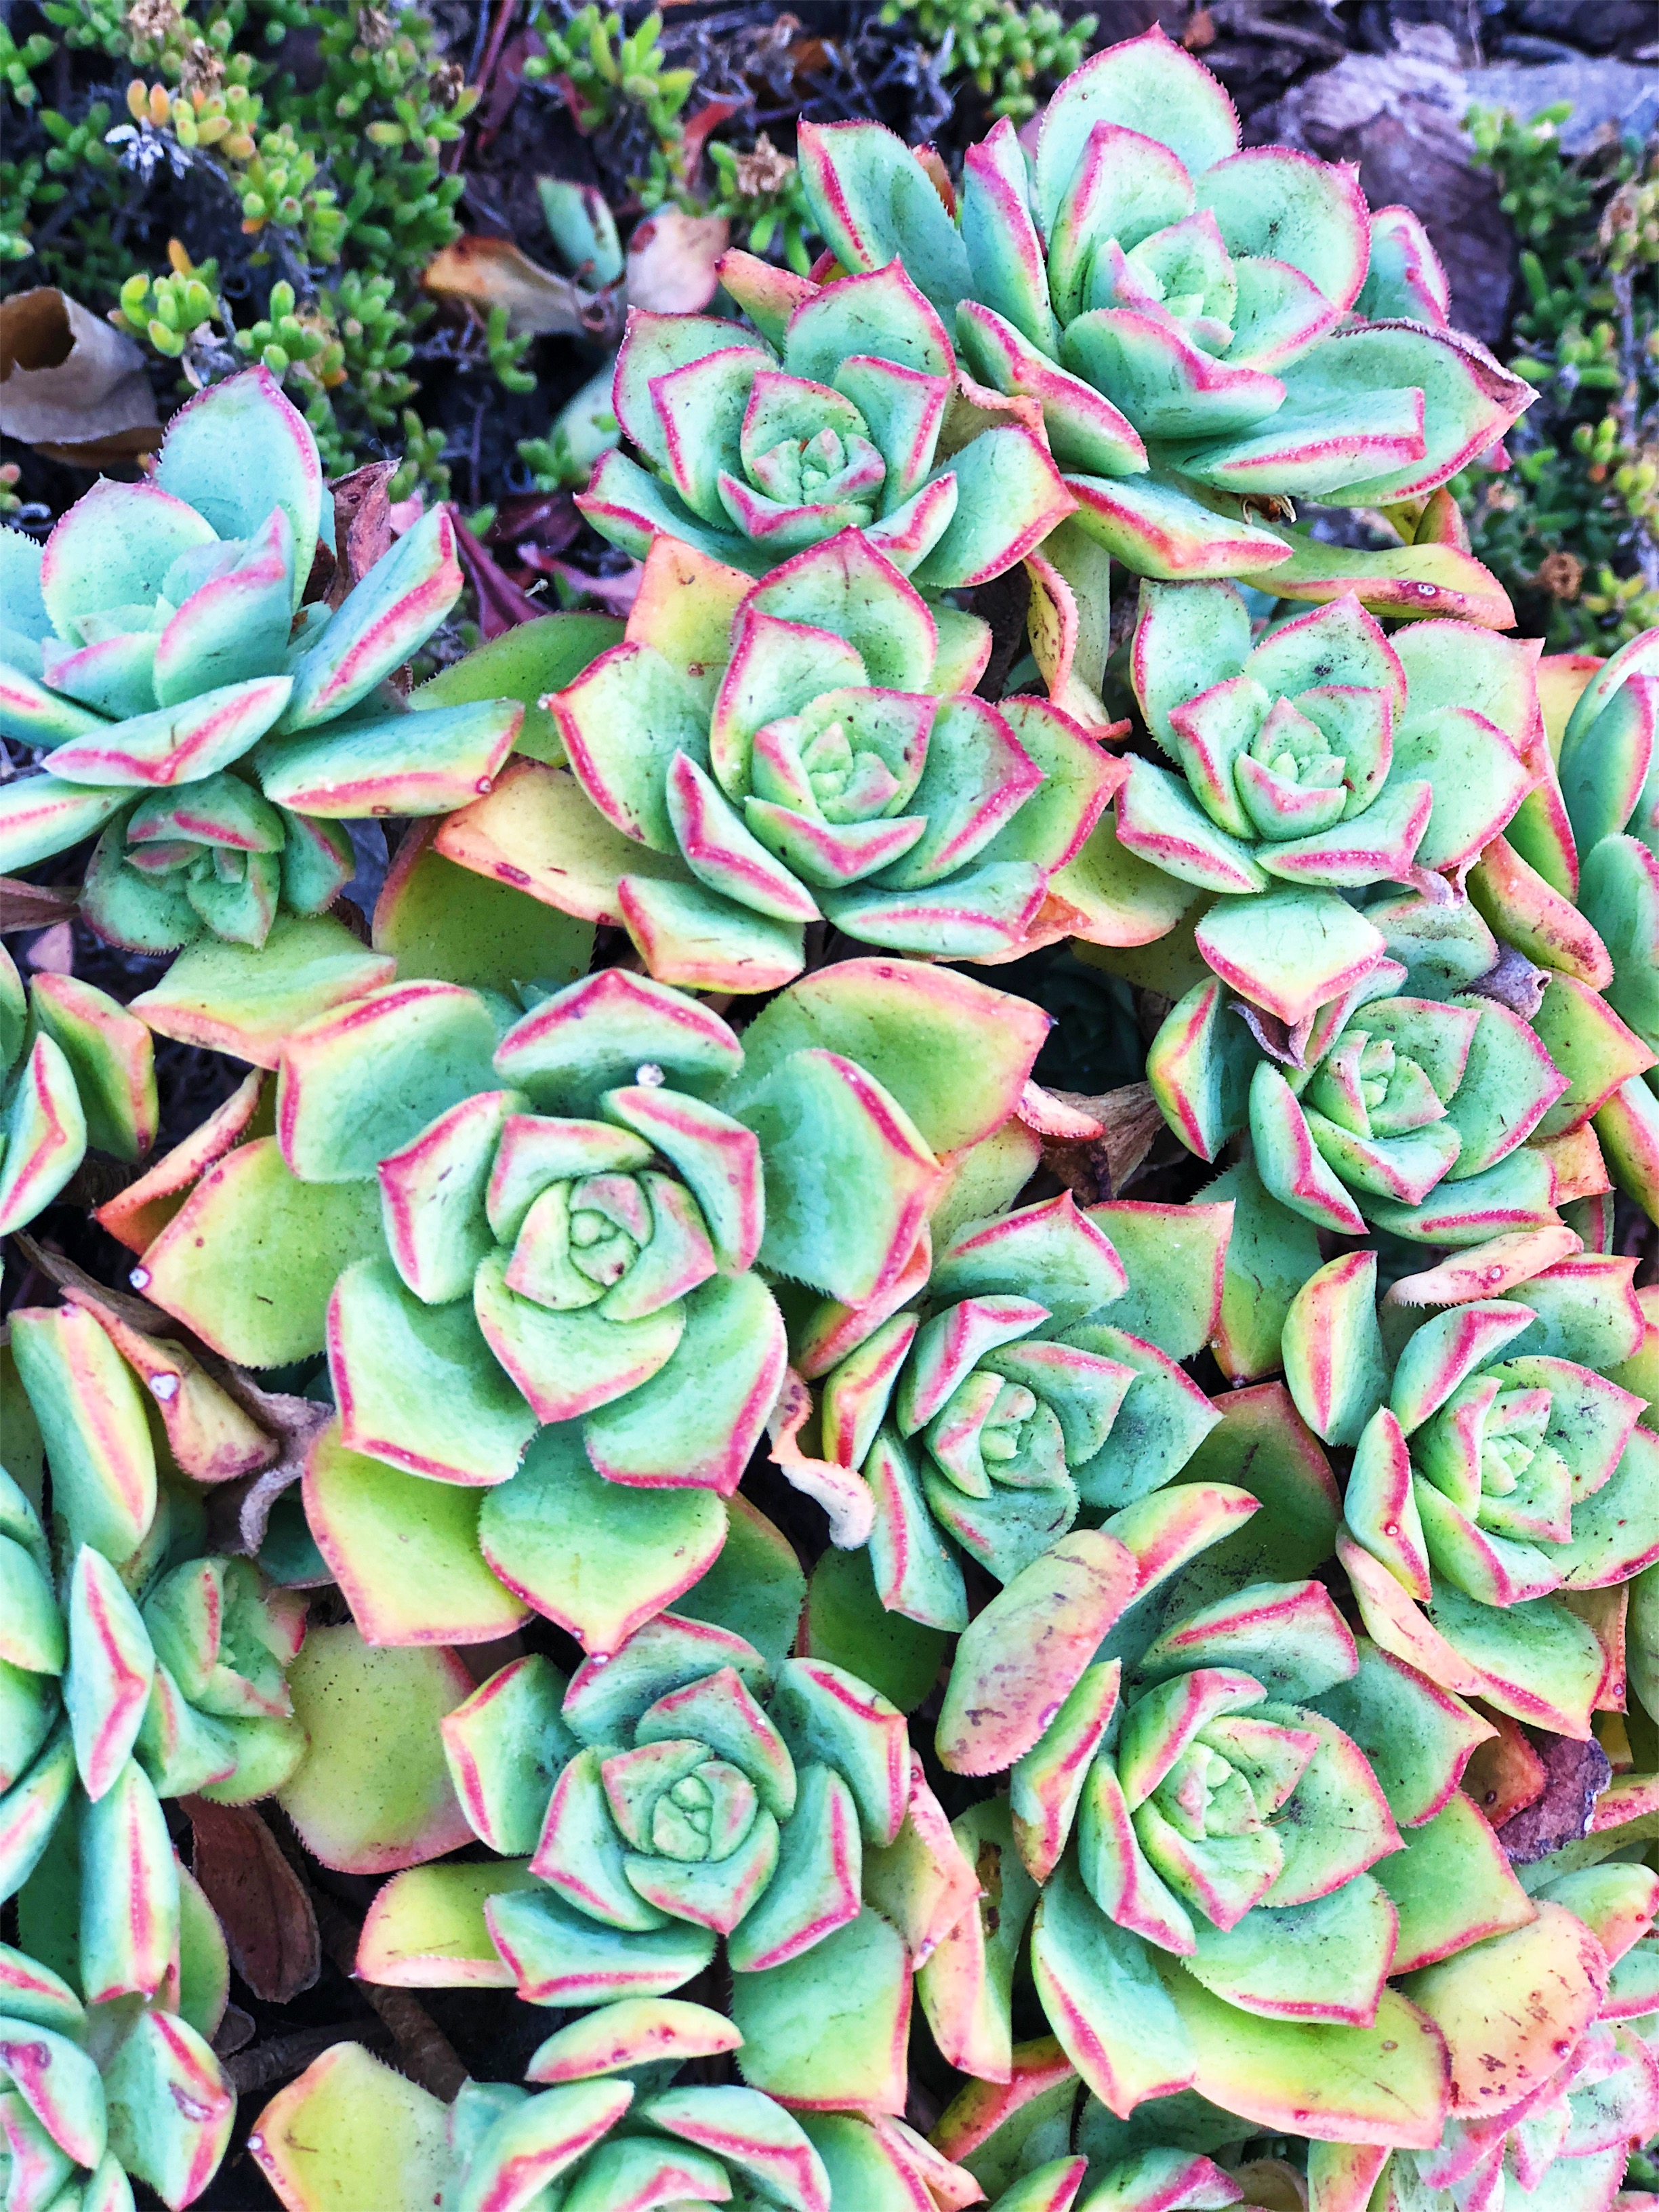 The succulents grew like weeds. Like the most beautiful, stylish, Instagram-approved weeds.